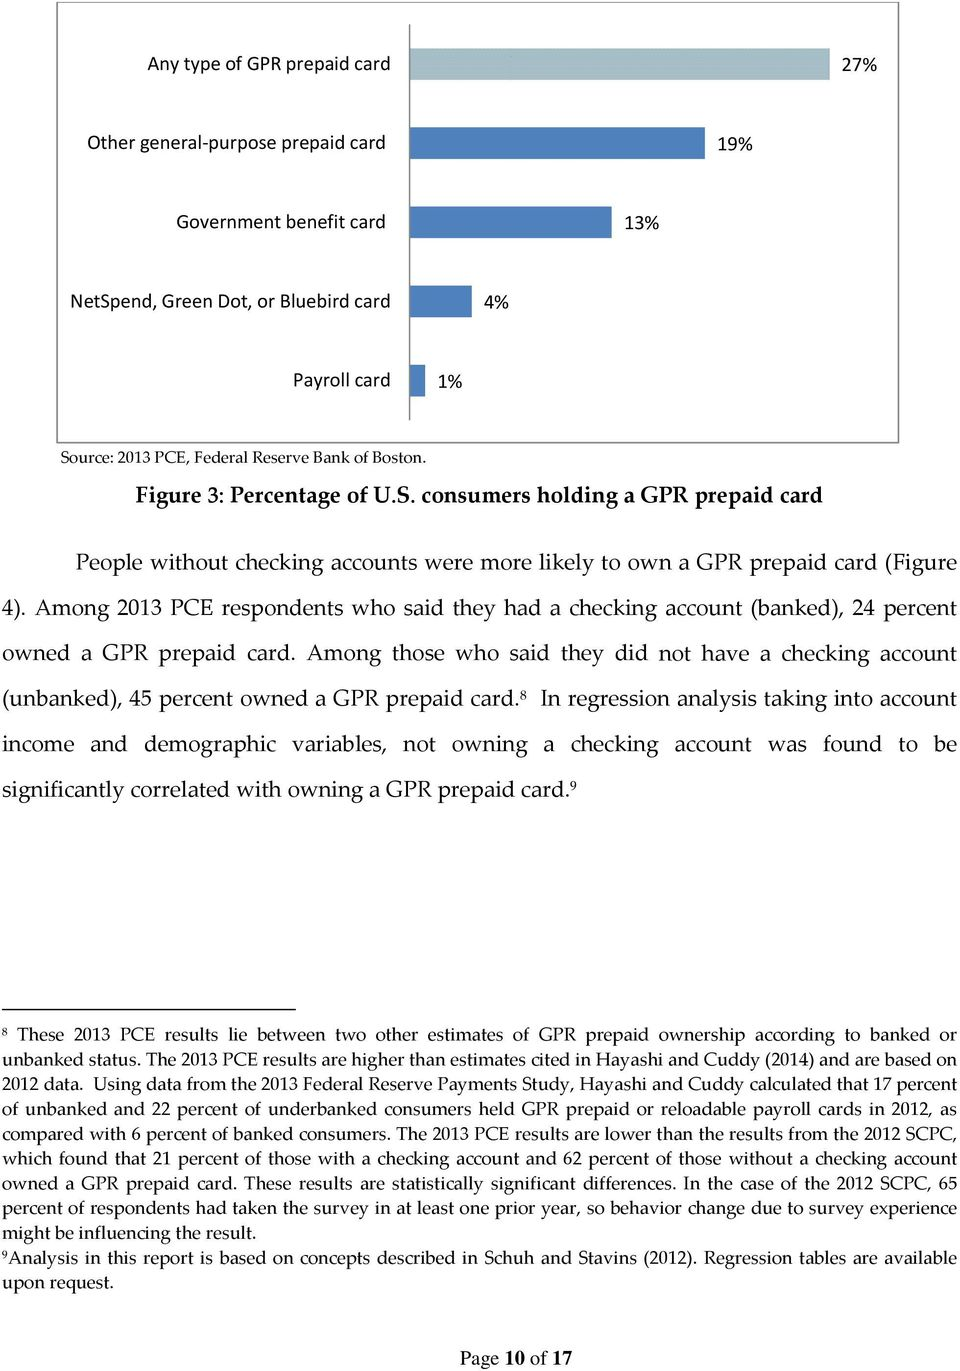 Among 2013 PCE respondents who said they had a checking account (banked), 24 percent owned a GPR prepaid card.